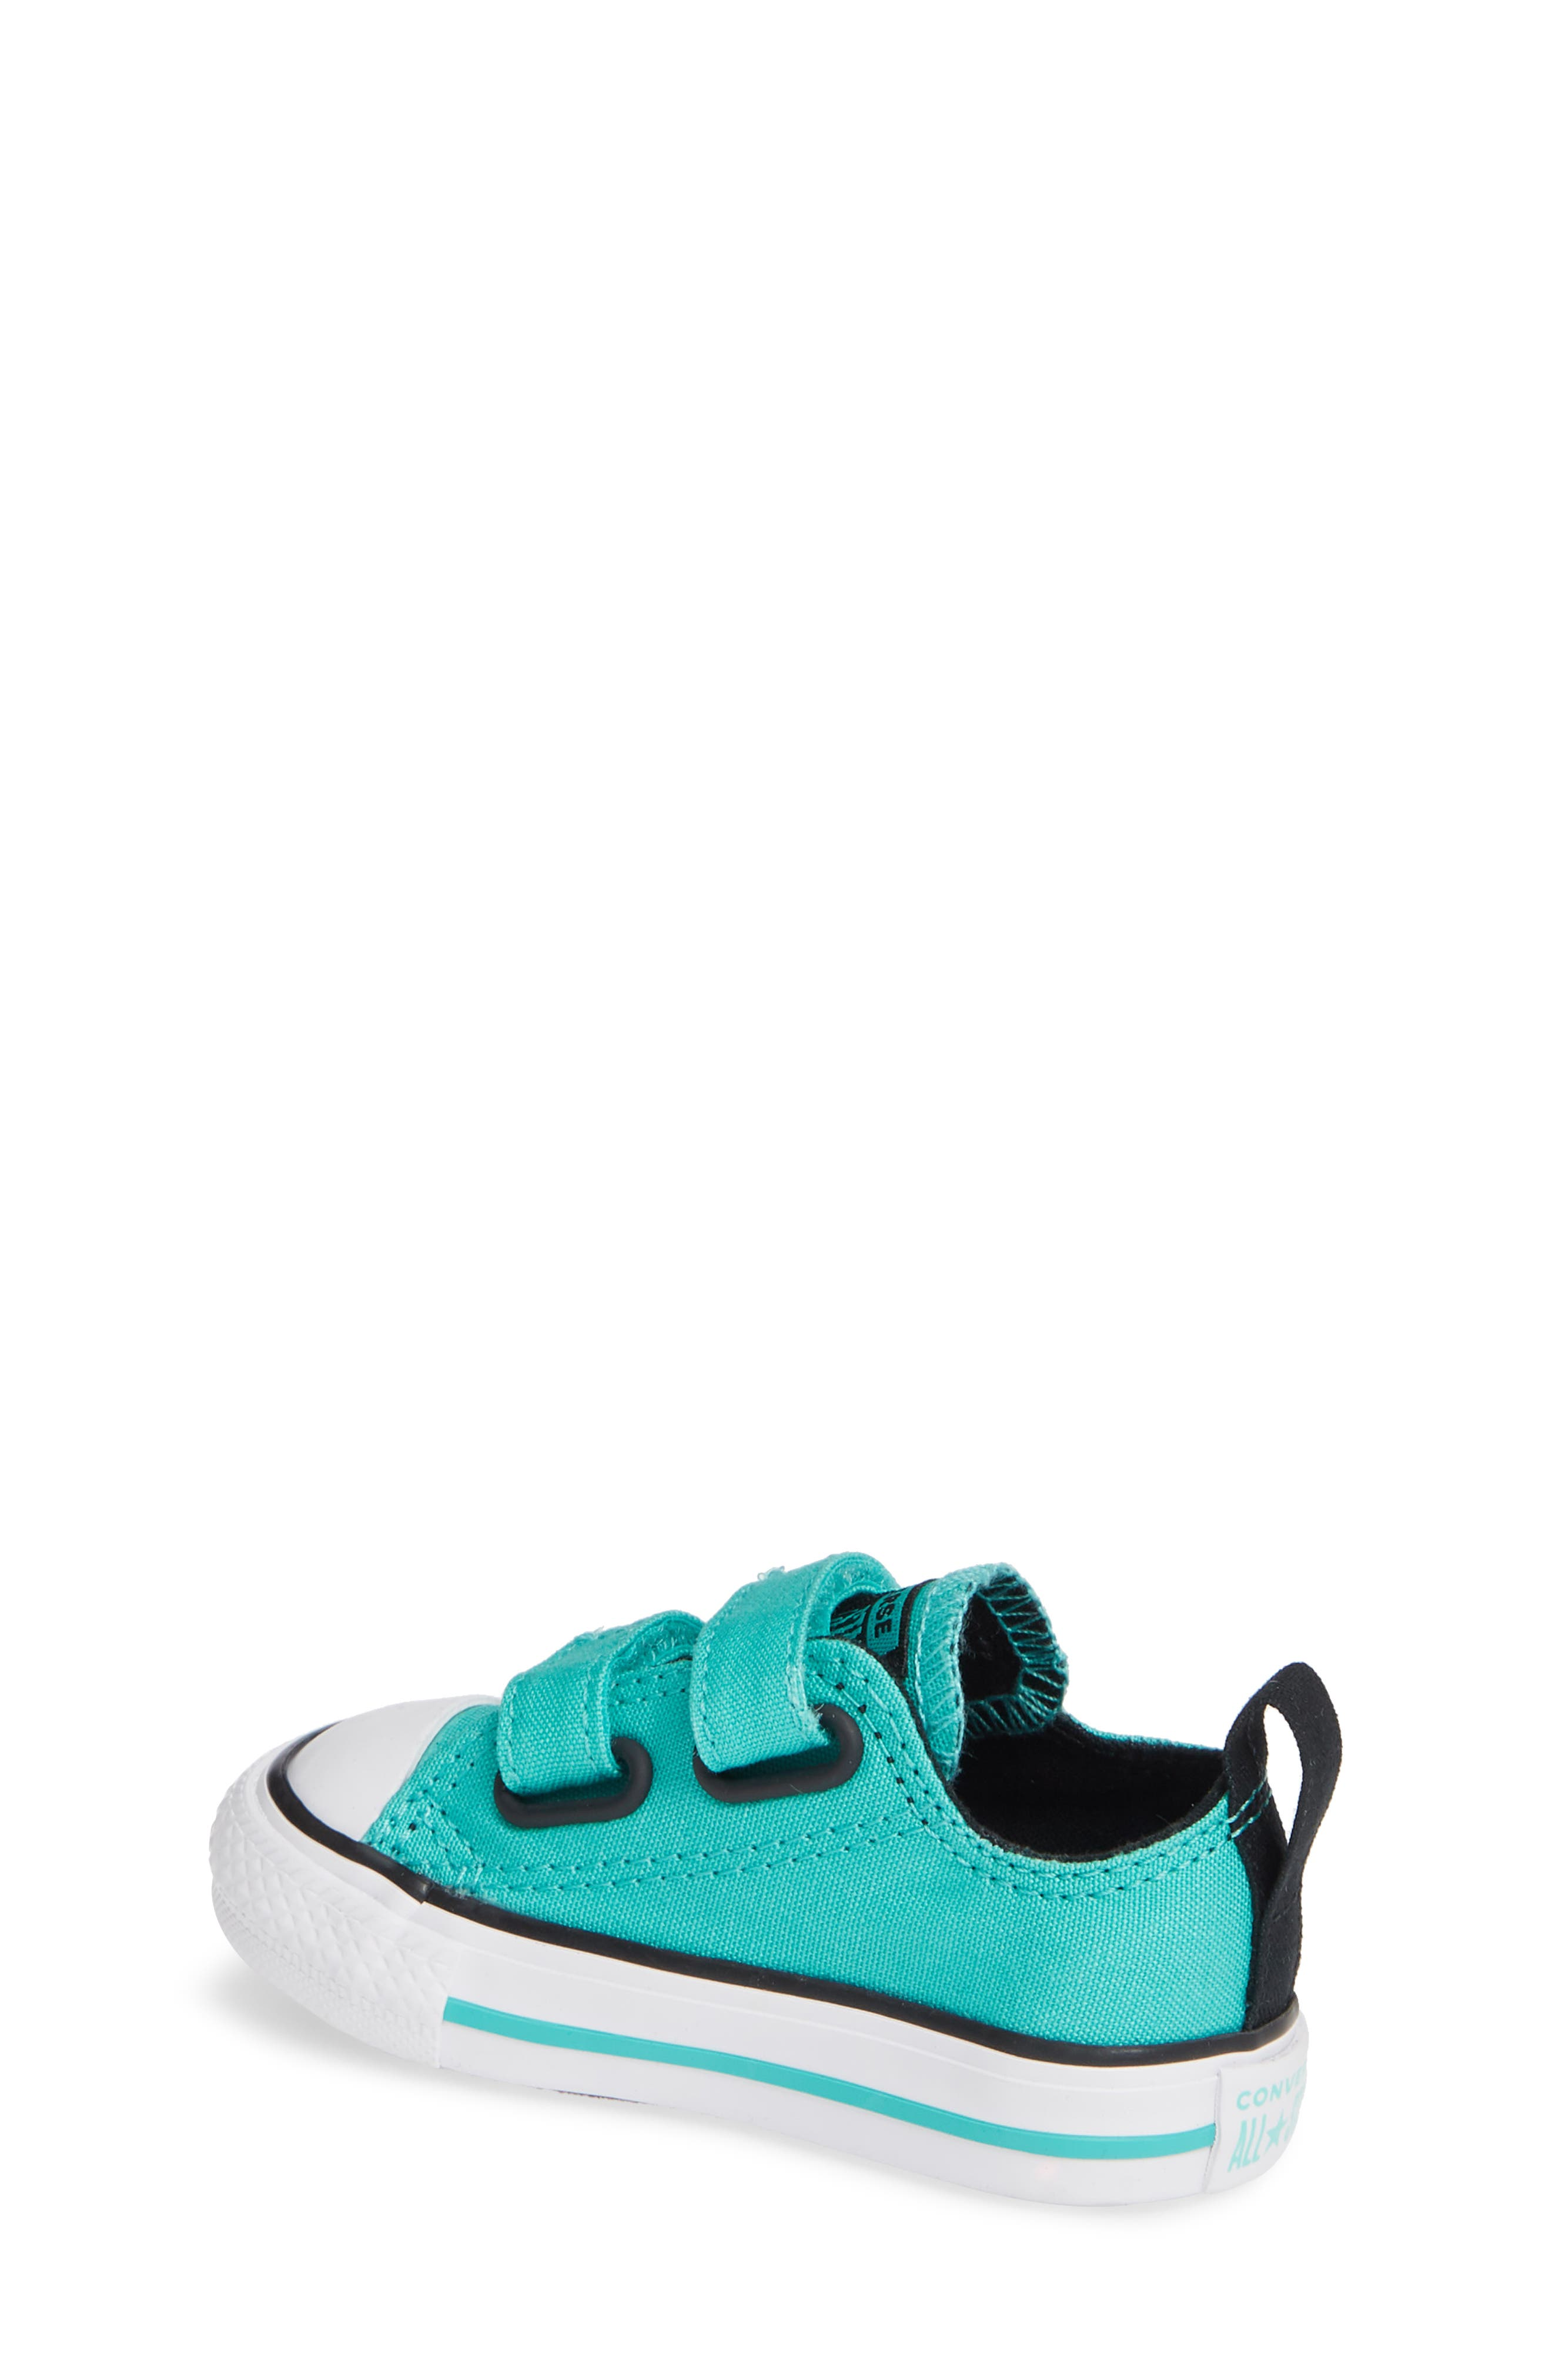 Chuck Taylor<sup>®</sup> 'Double Strap' Sneaker,                             Alternate thumbnail 2, color,                             PURE TEAL